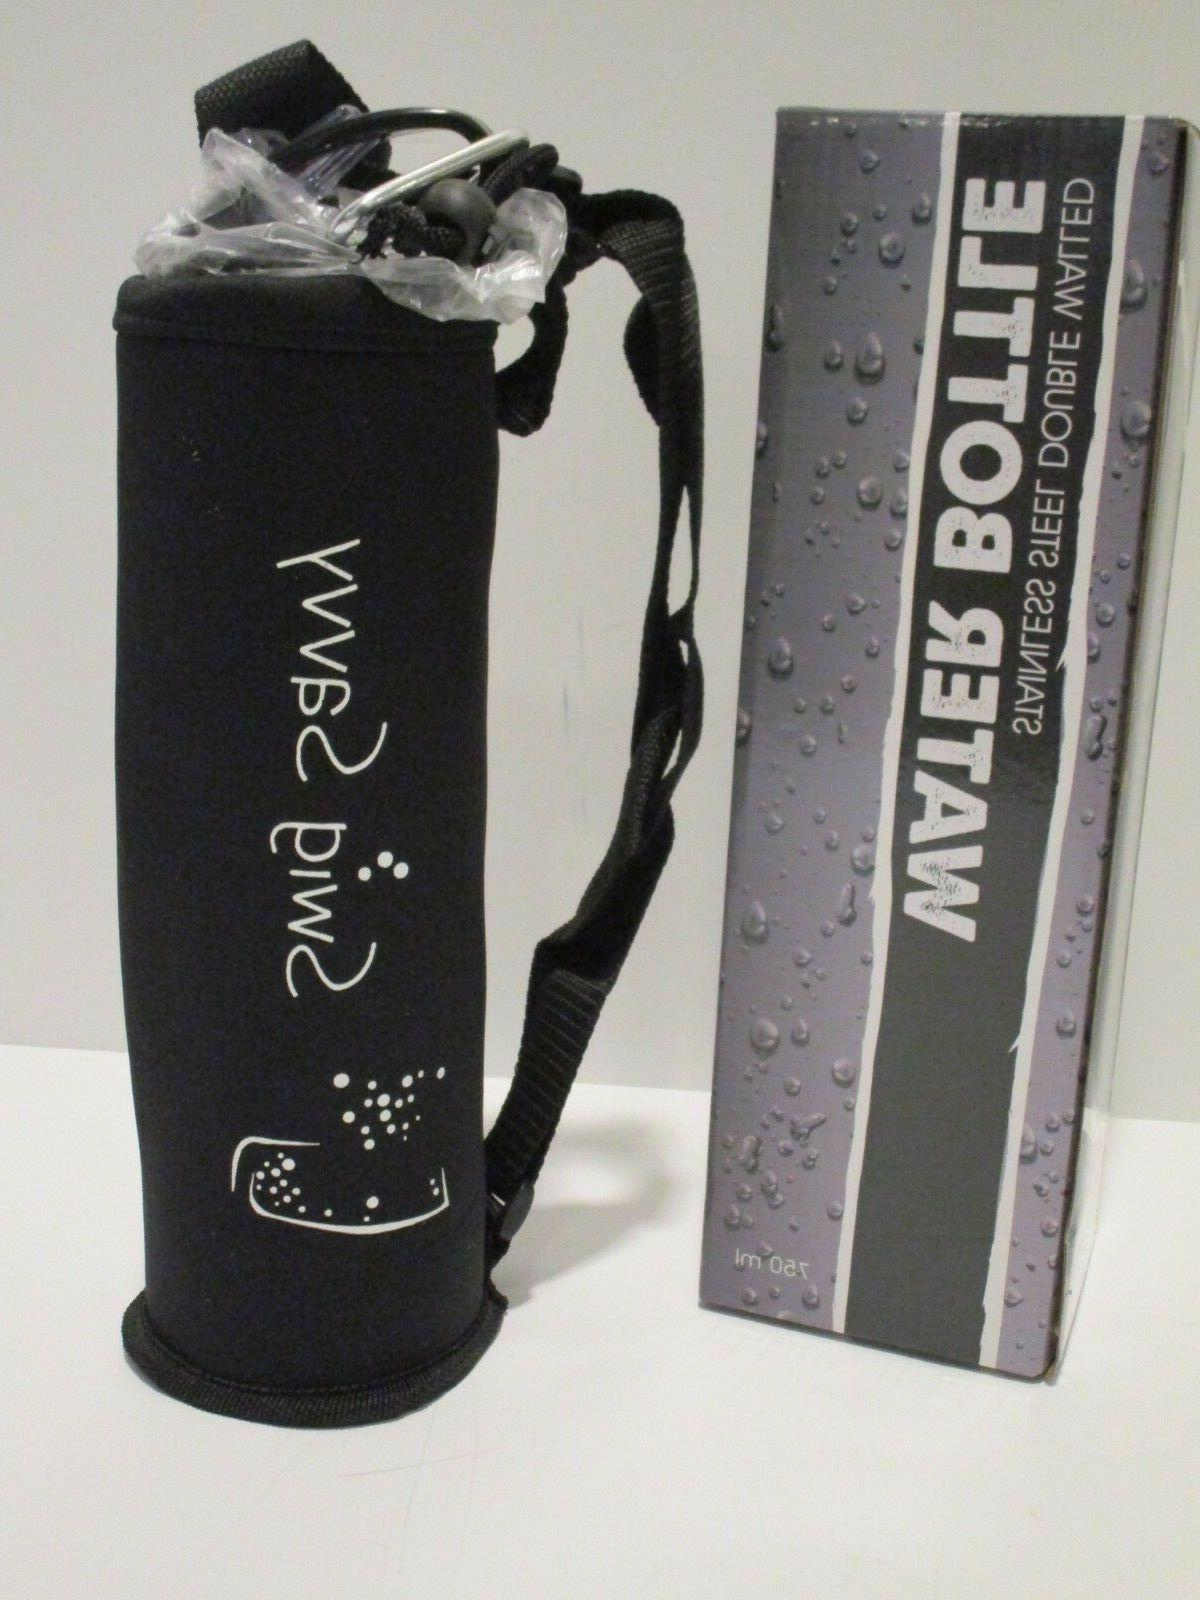 25oz stainless steel double walled water bottle